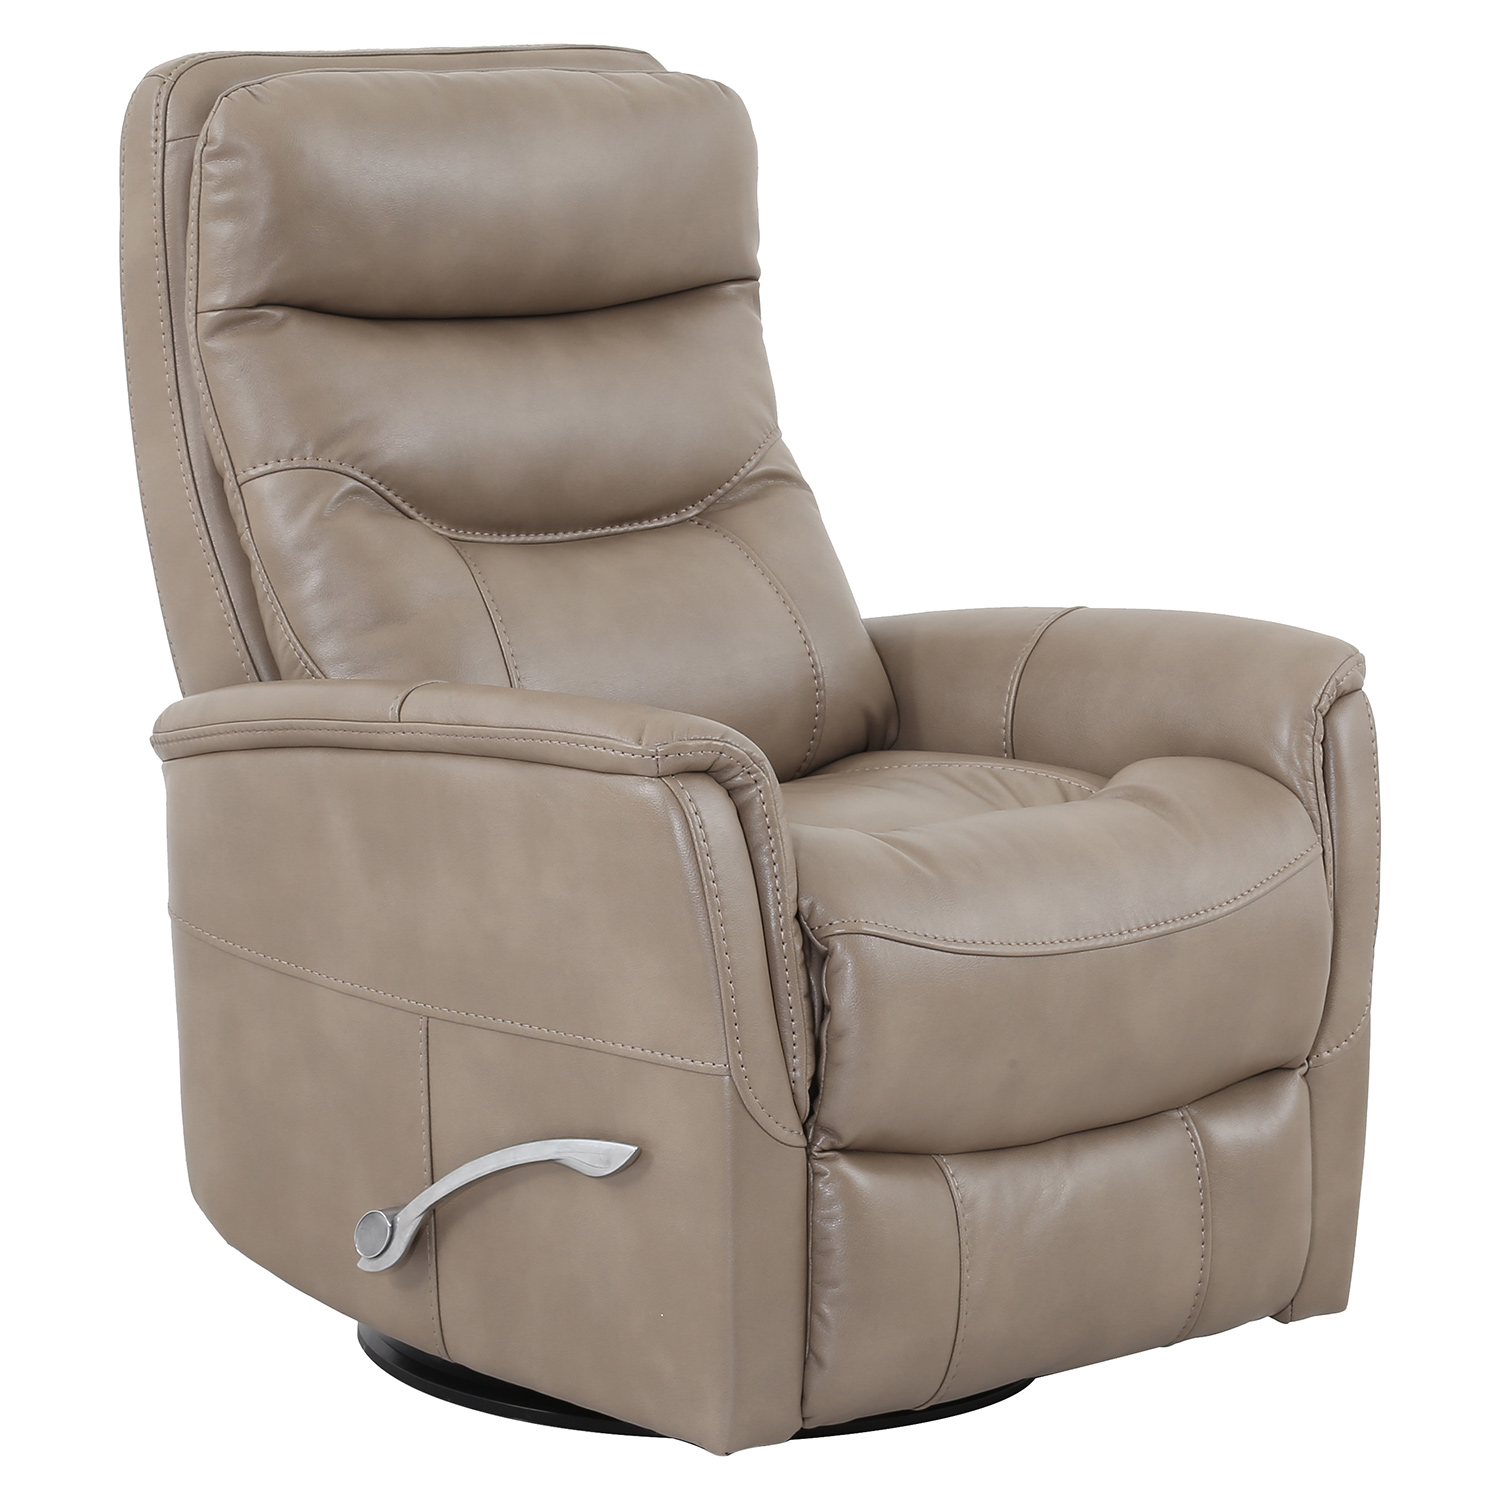 swivel chair price philippines back supports for chairs parker house mgem 812gs lin gemini glider recliner